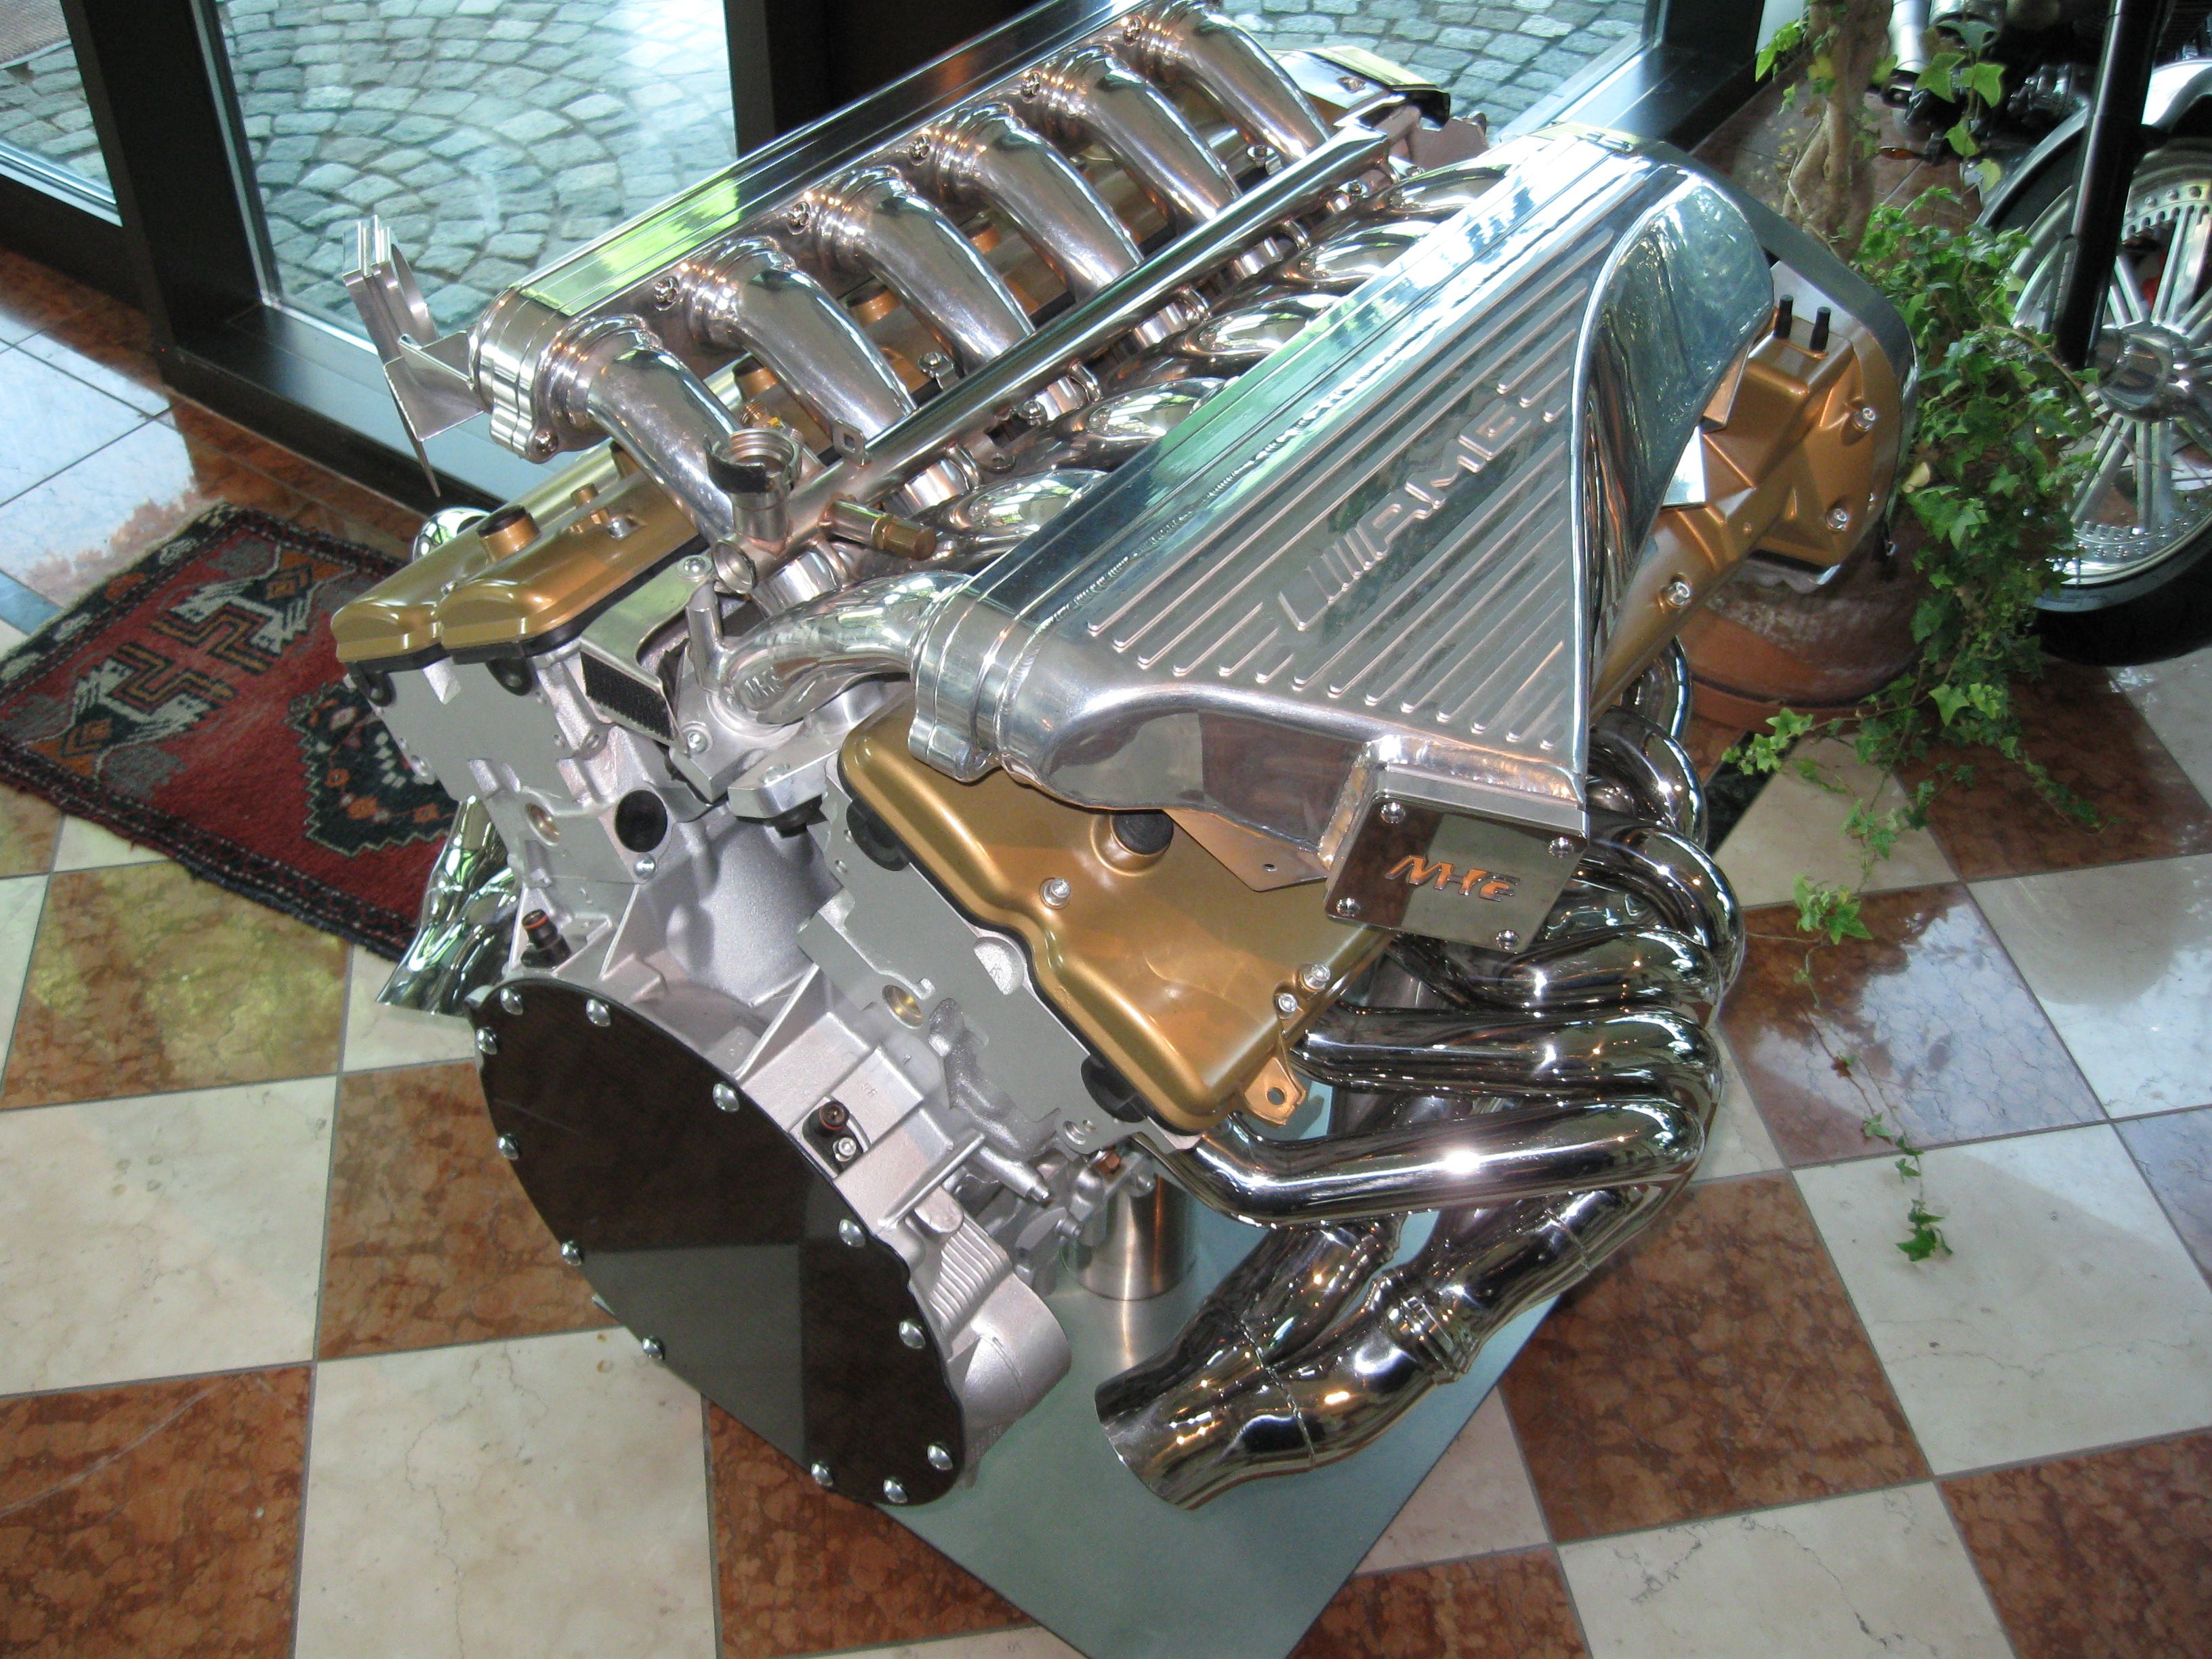 Mercedes Amg Bmw V12 Engine Diagram Display At The Pagani Factory